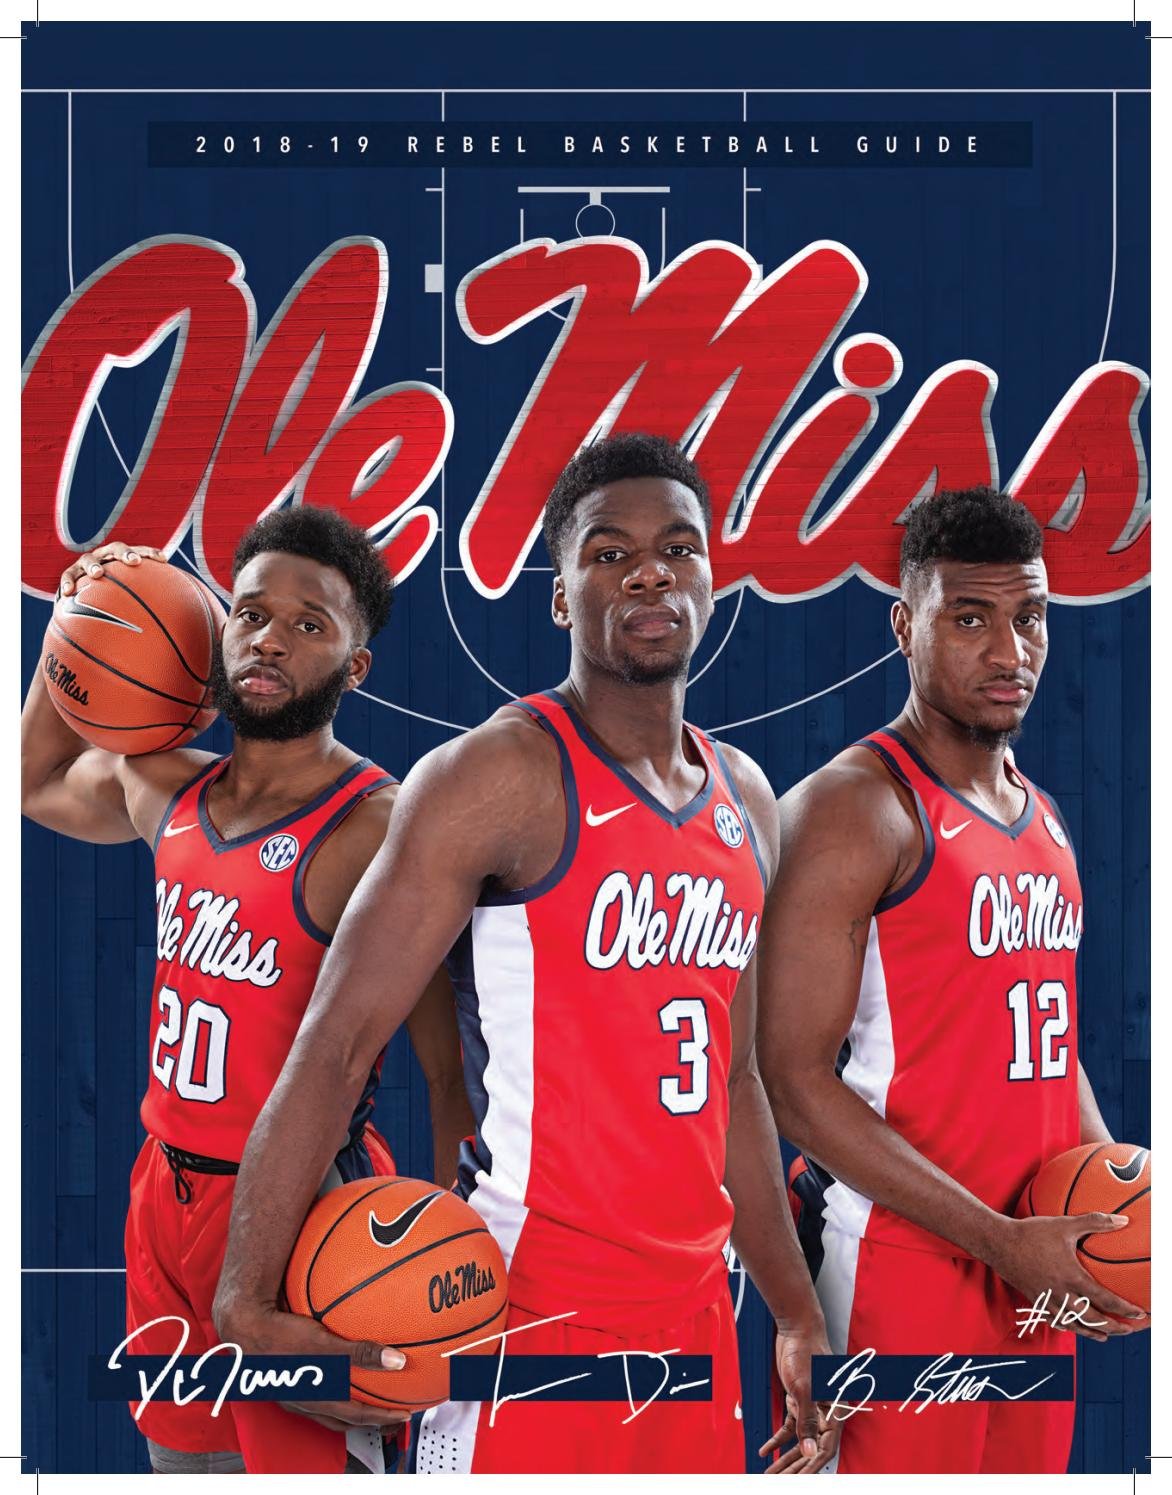 2018-19 Ole Miss Men s Basketball Media Guide by Ole Miss Athletics - issuu 1823f6ebca64